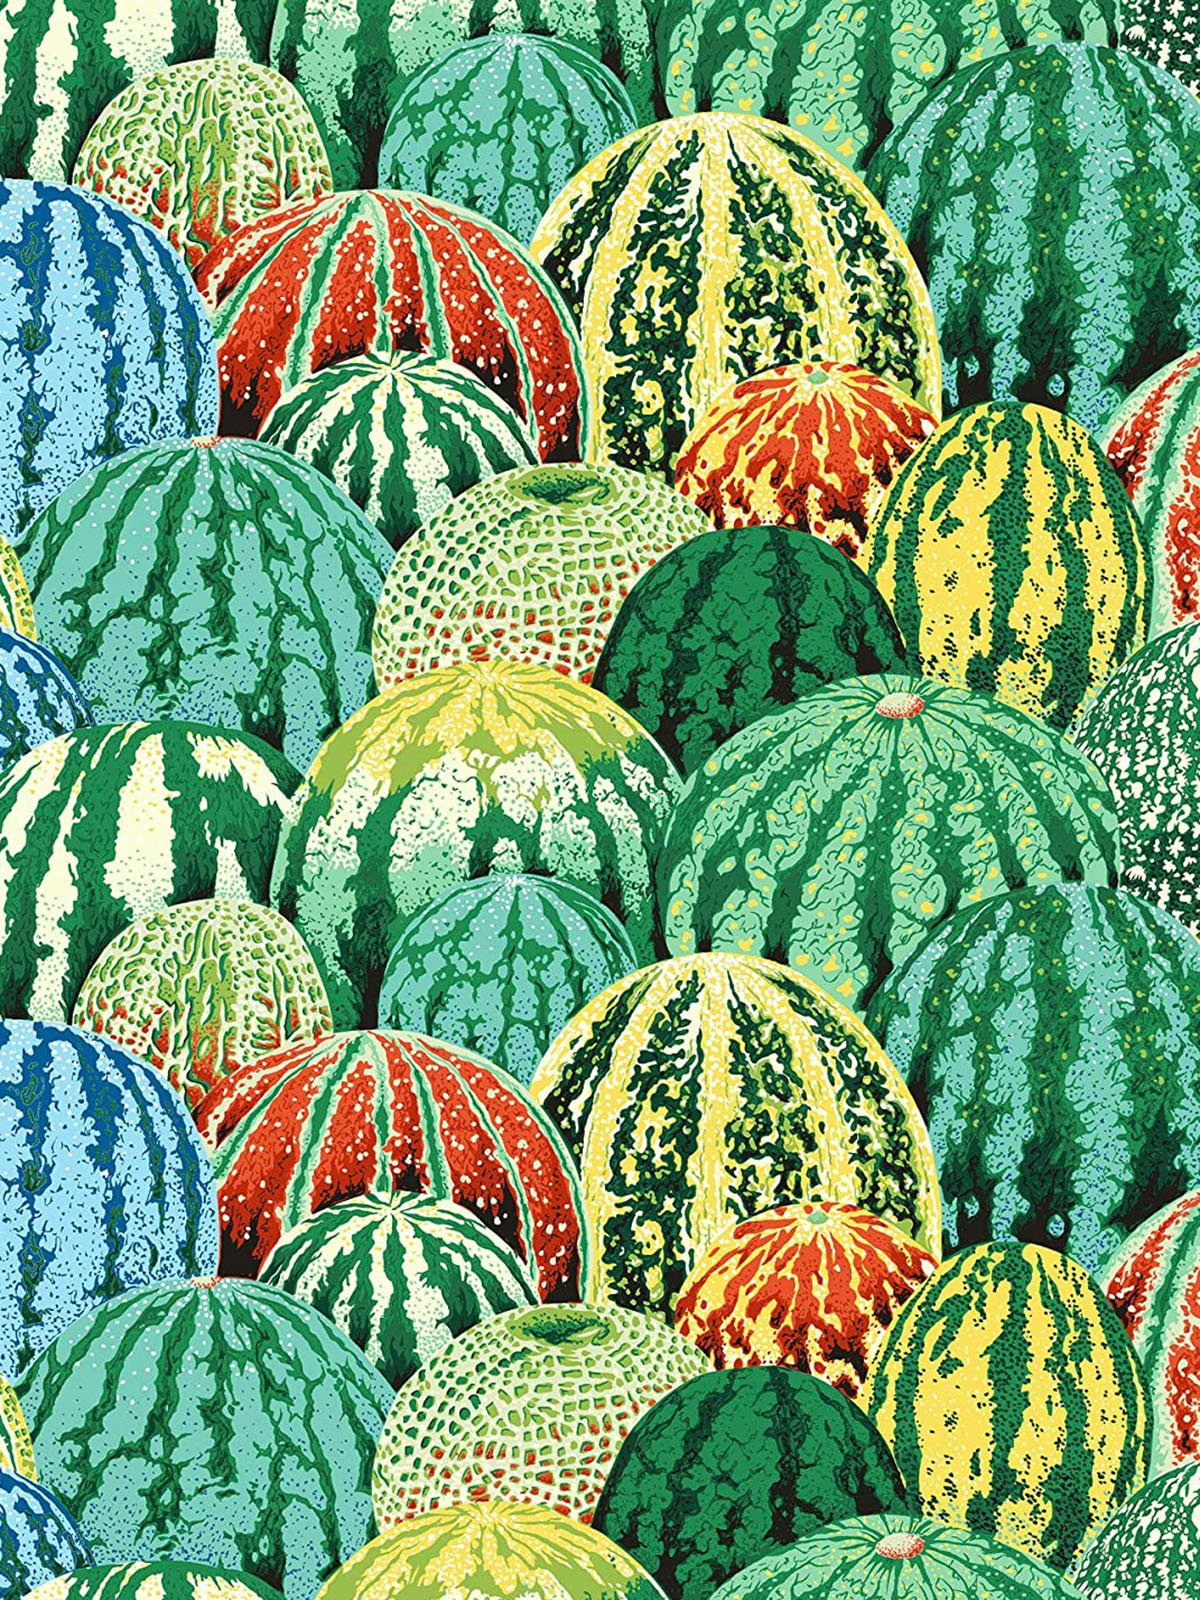 Watermelons (G)